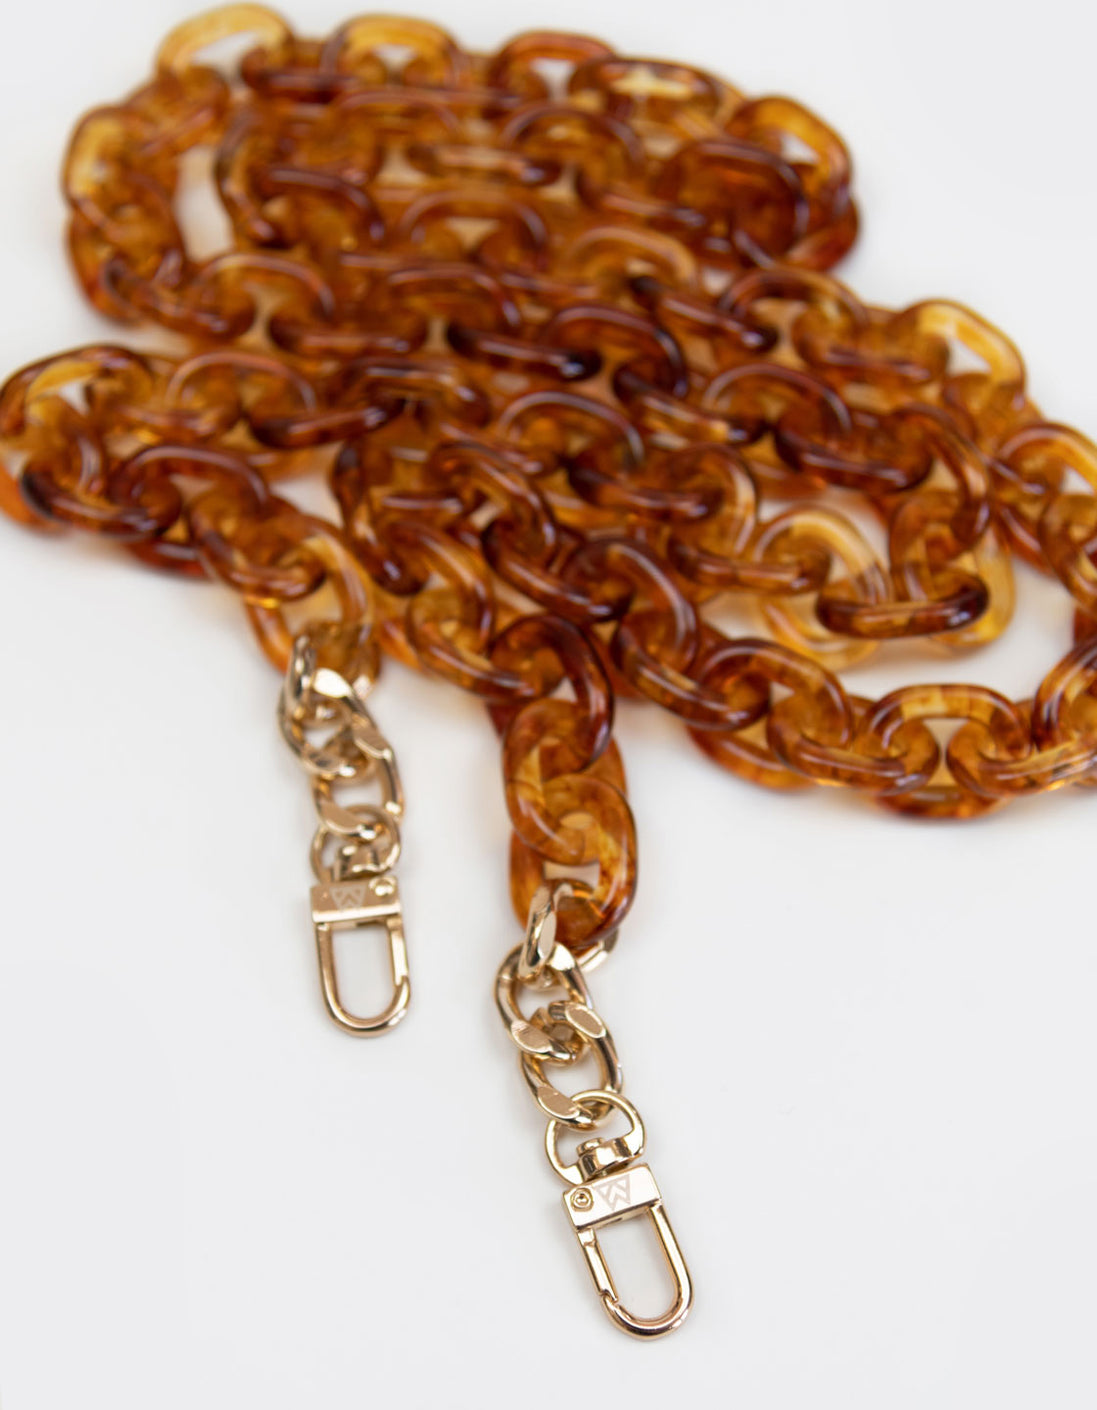 Resin Chain Strap in Translucent Tortoise